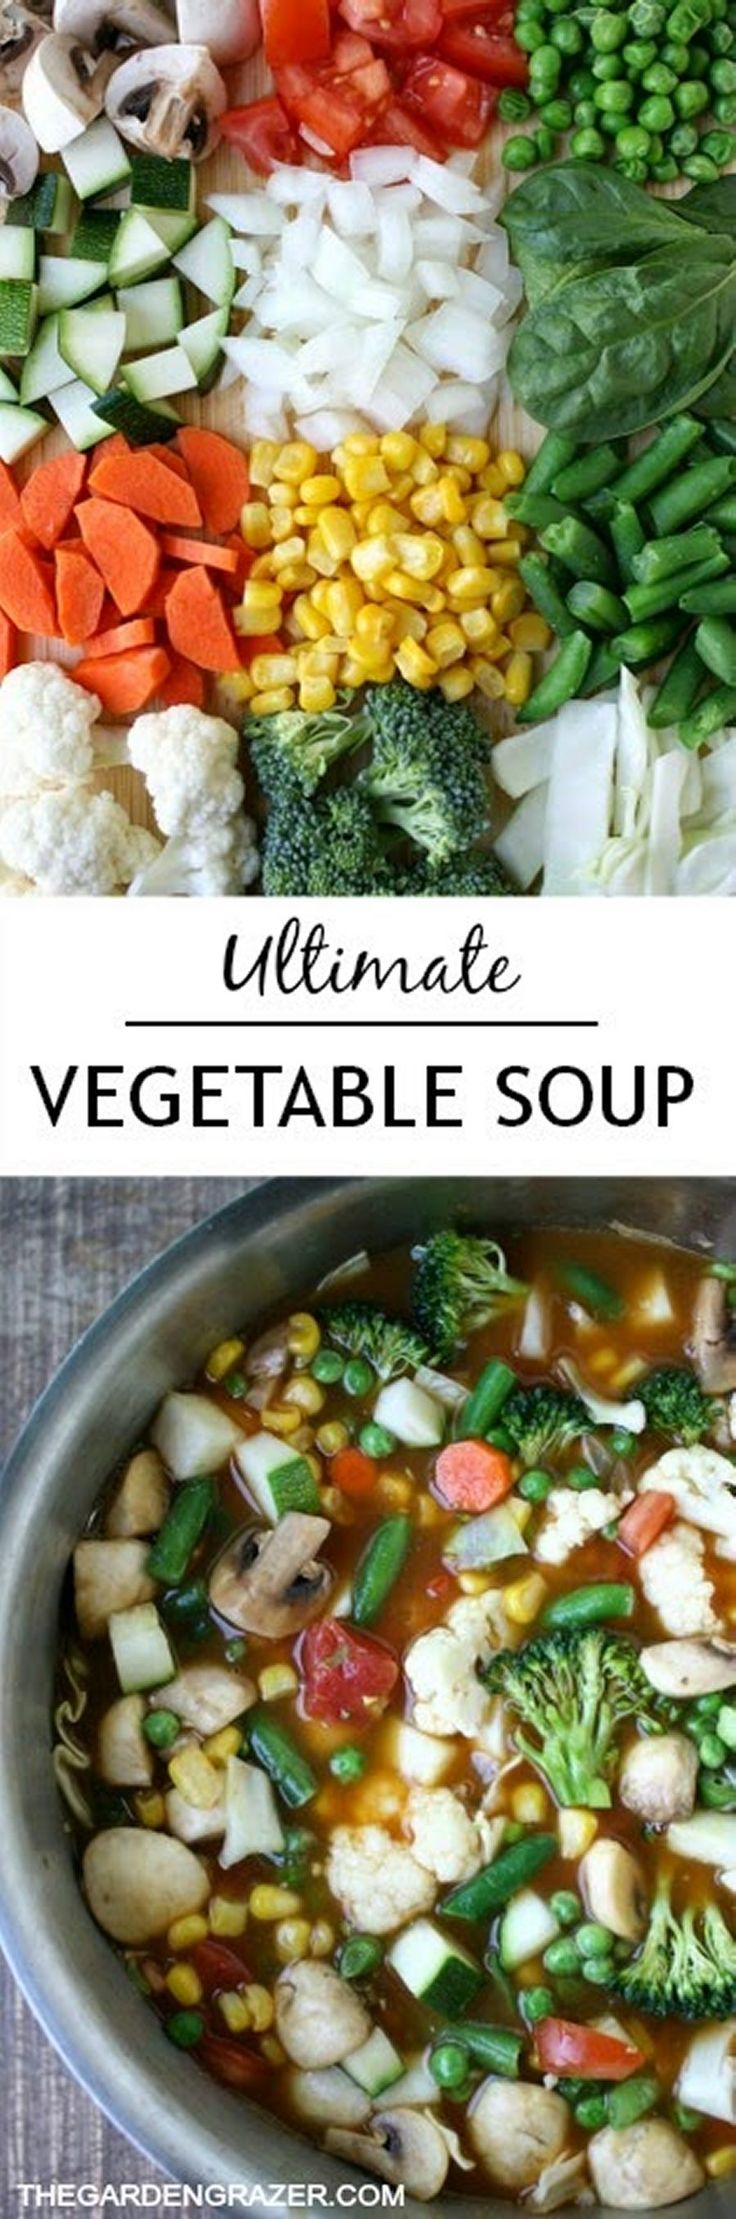 """""""Ultimate Vegetable Soup"""" by Kaitlin on The Garden Grazer; Makes about 8 servings; """"Don't feel like you have to measure everything exactly. I prefer the 'chop and toss' approach when making soup ;) Adaptions are endless with this versatile recipe. You can even try quinoa, rice, herbs, beans, barley, etc."""""""